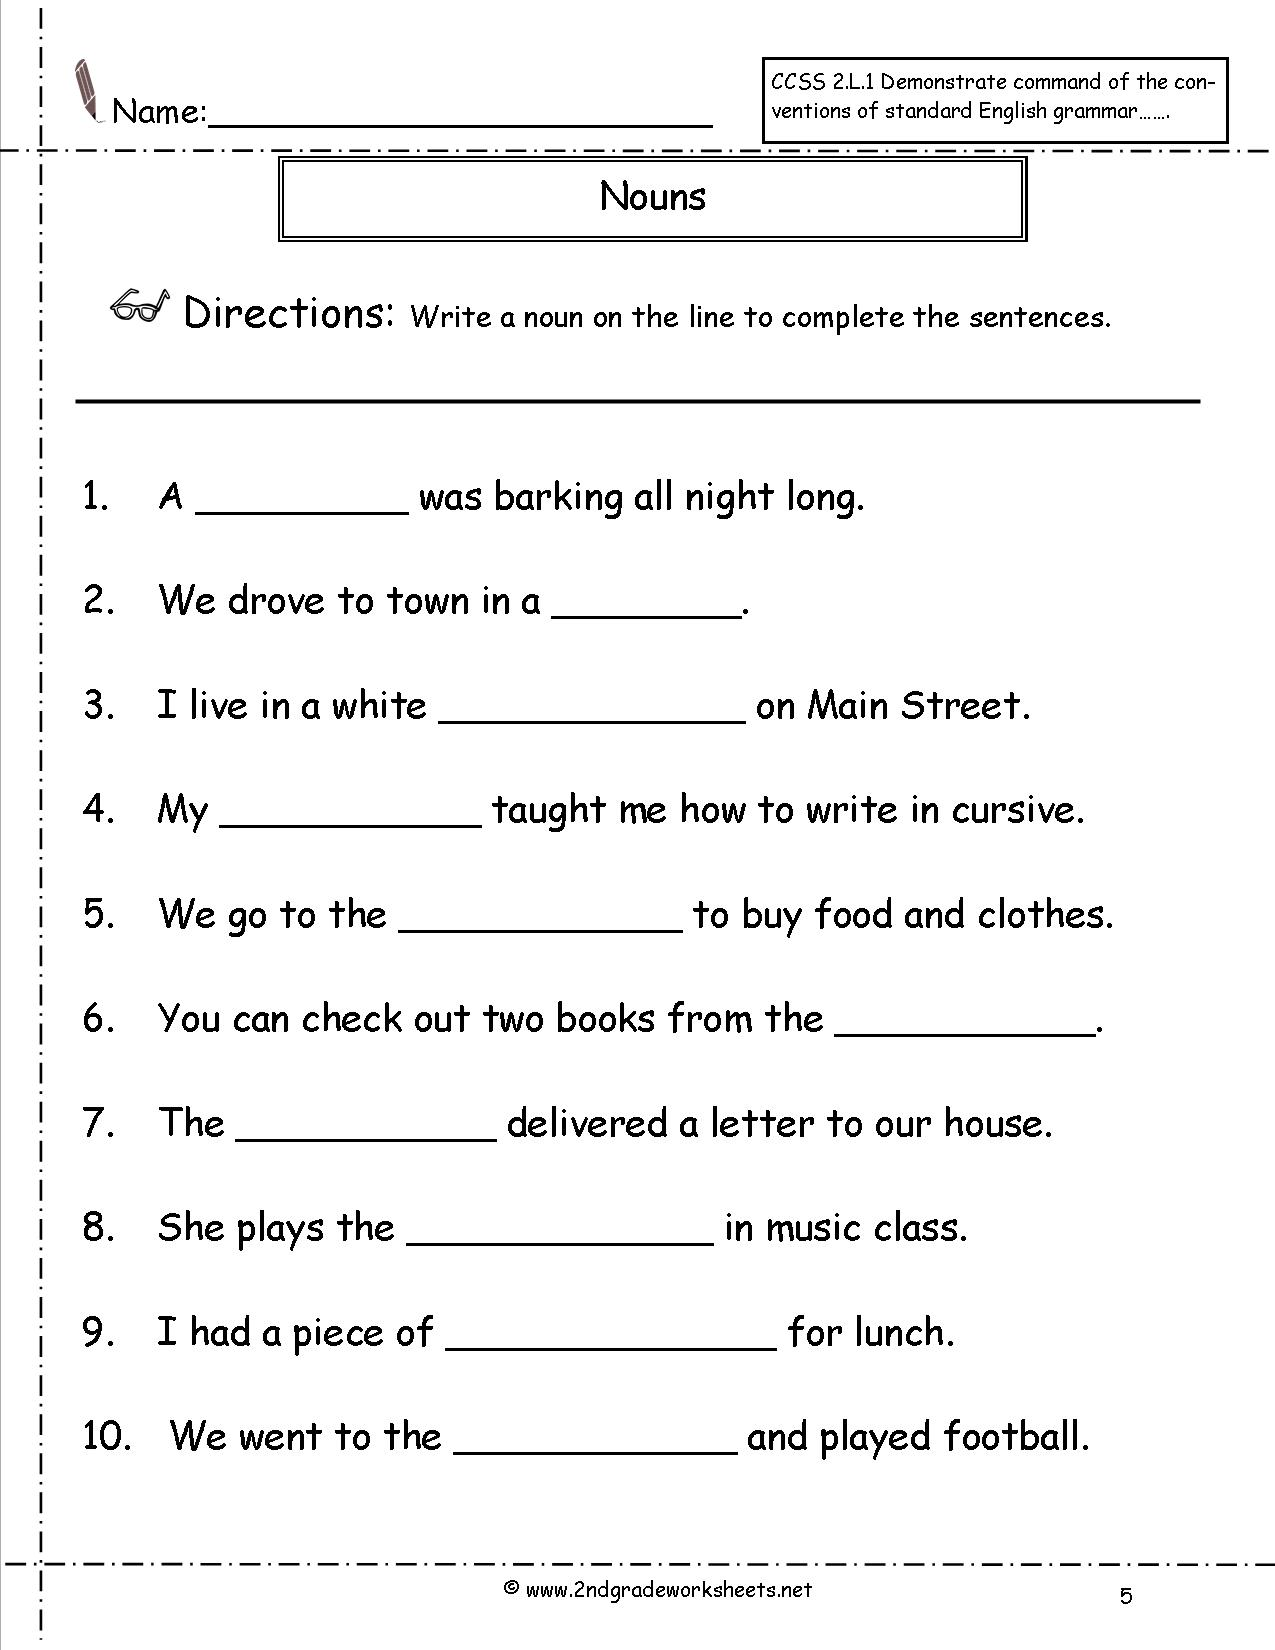 Worksheet Of Verbs For Class 3